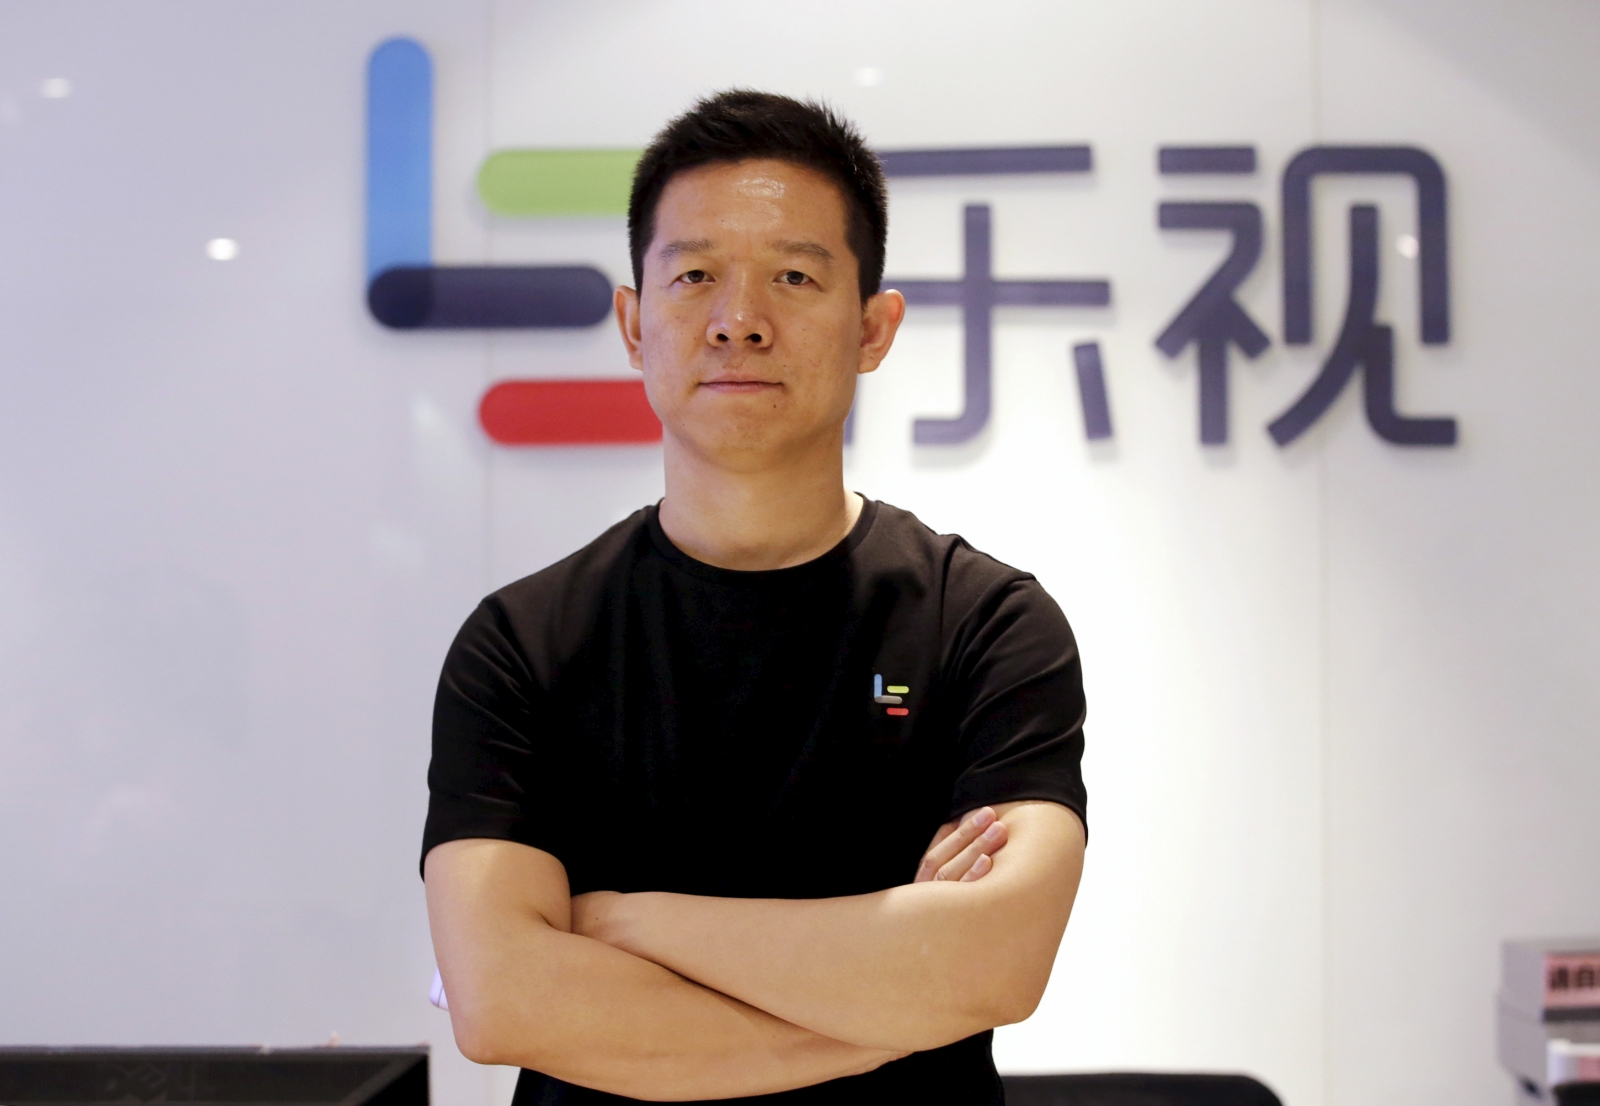 LeEco founder steps down after court freezes $182m in assets